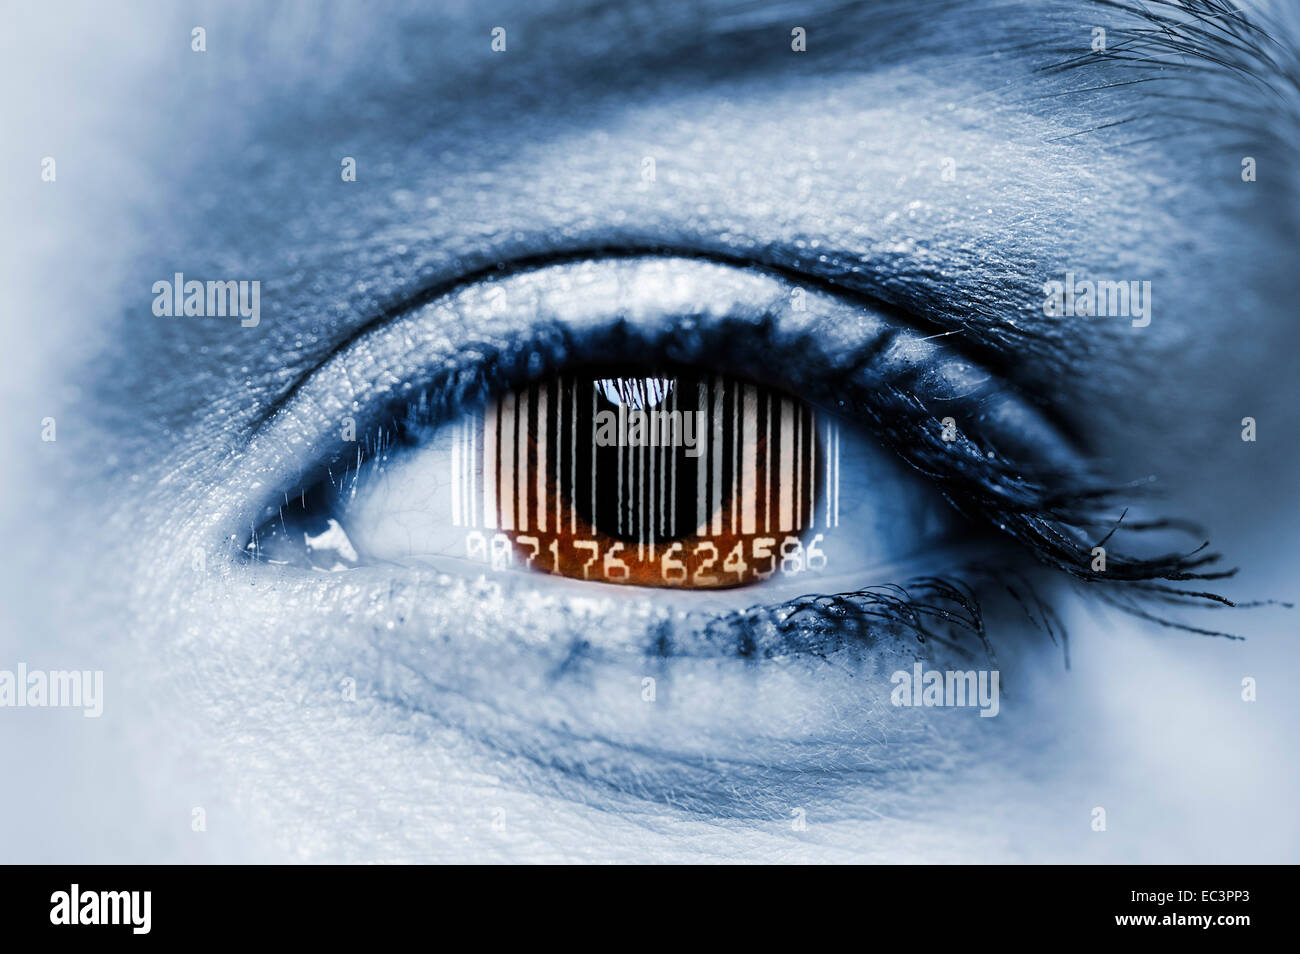 Woman s eye with bar code, census of population - Stock Image